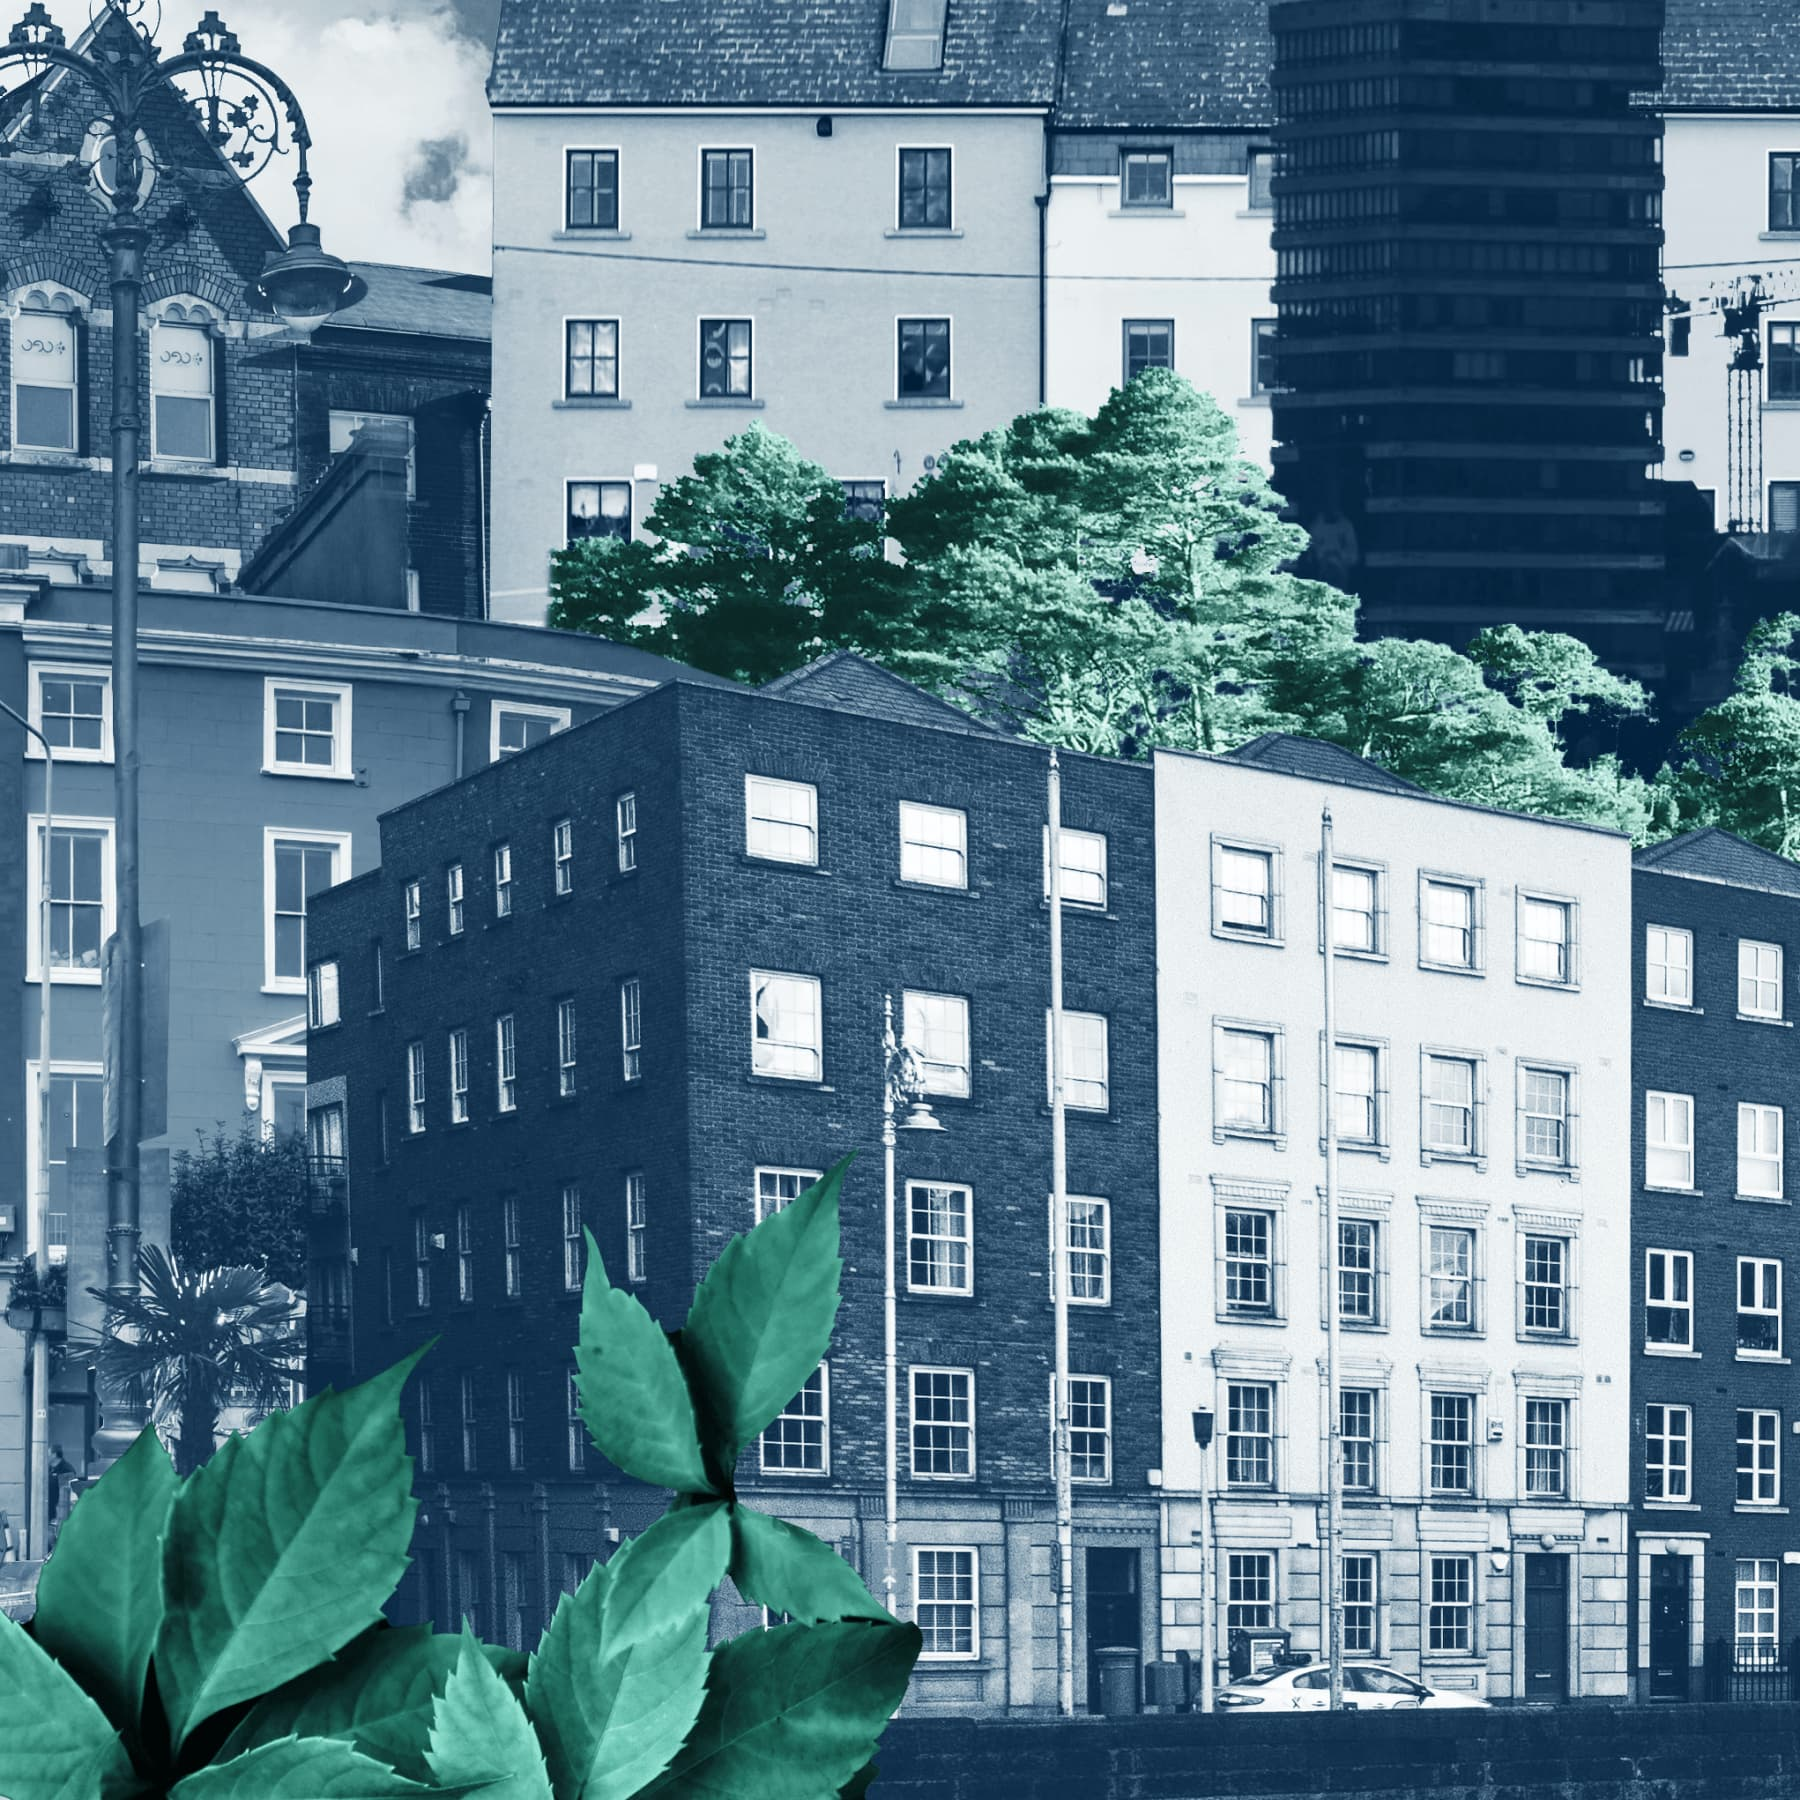 A city scape shot showing numerous building set against greenery in frankli's navy colour brand palette.